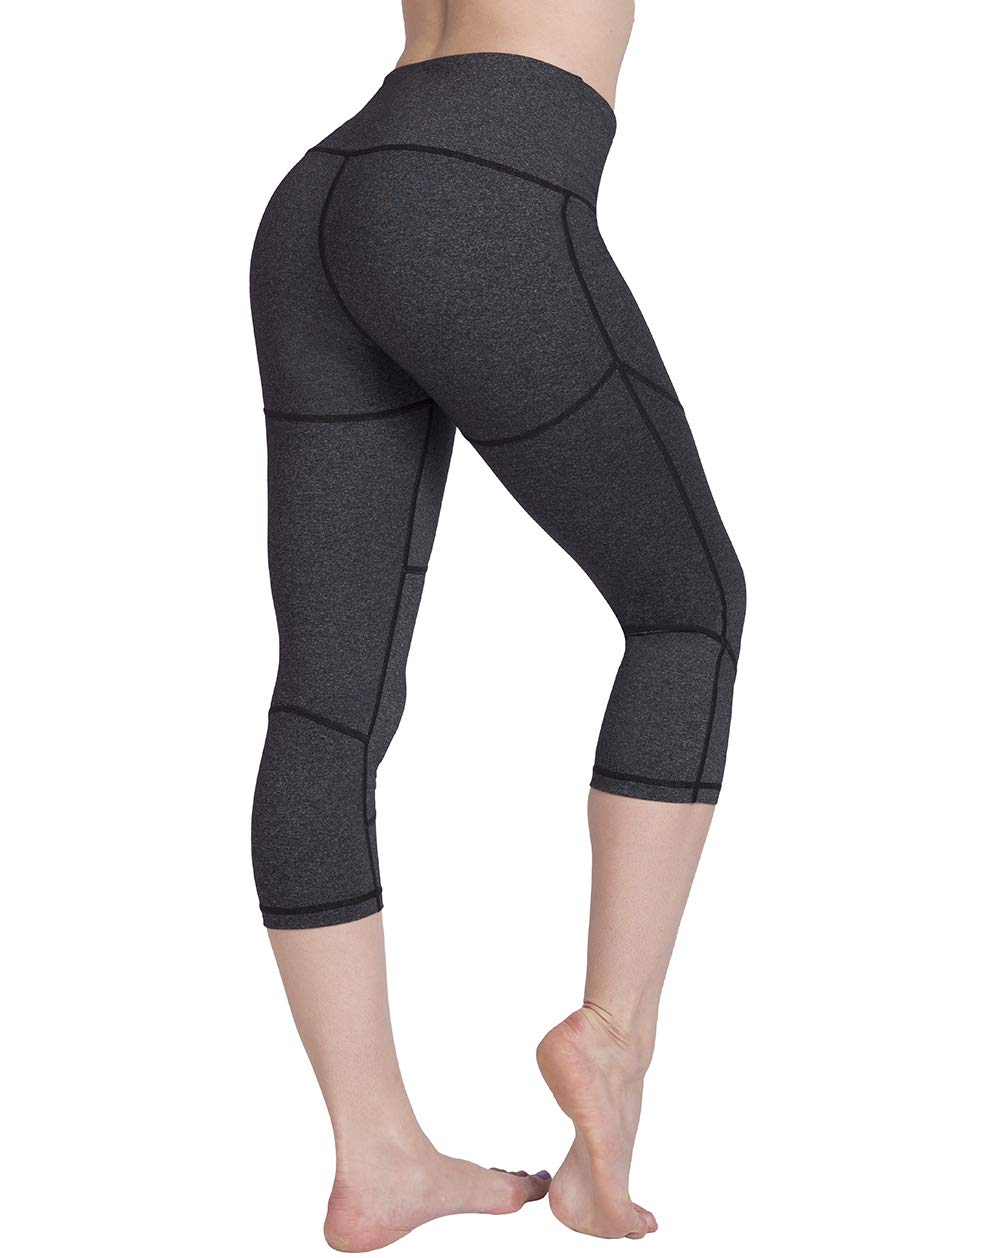 UURUN Women's Capri Workout Leggings with Pockets High Waisted Tummy Control Yoga Pants Non See Through Compression Running Capris for Fitness Gym Athletic Grey XXL by UURUN